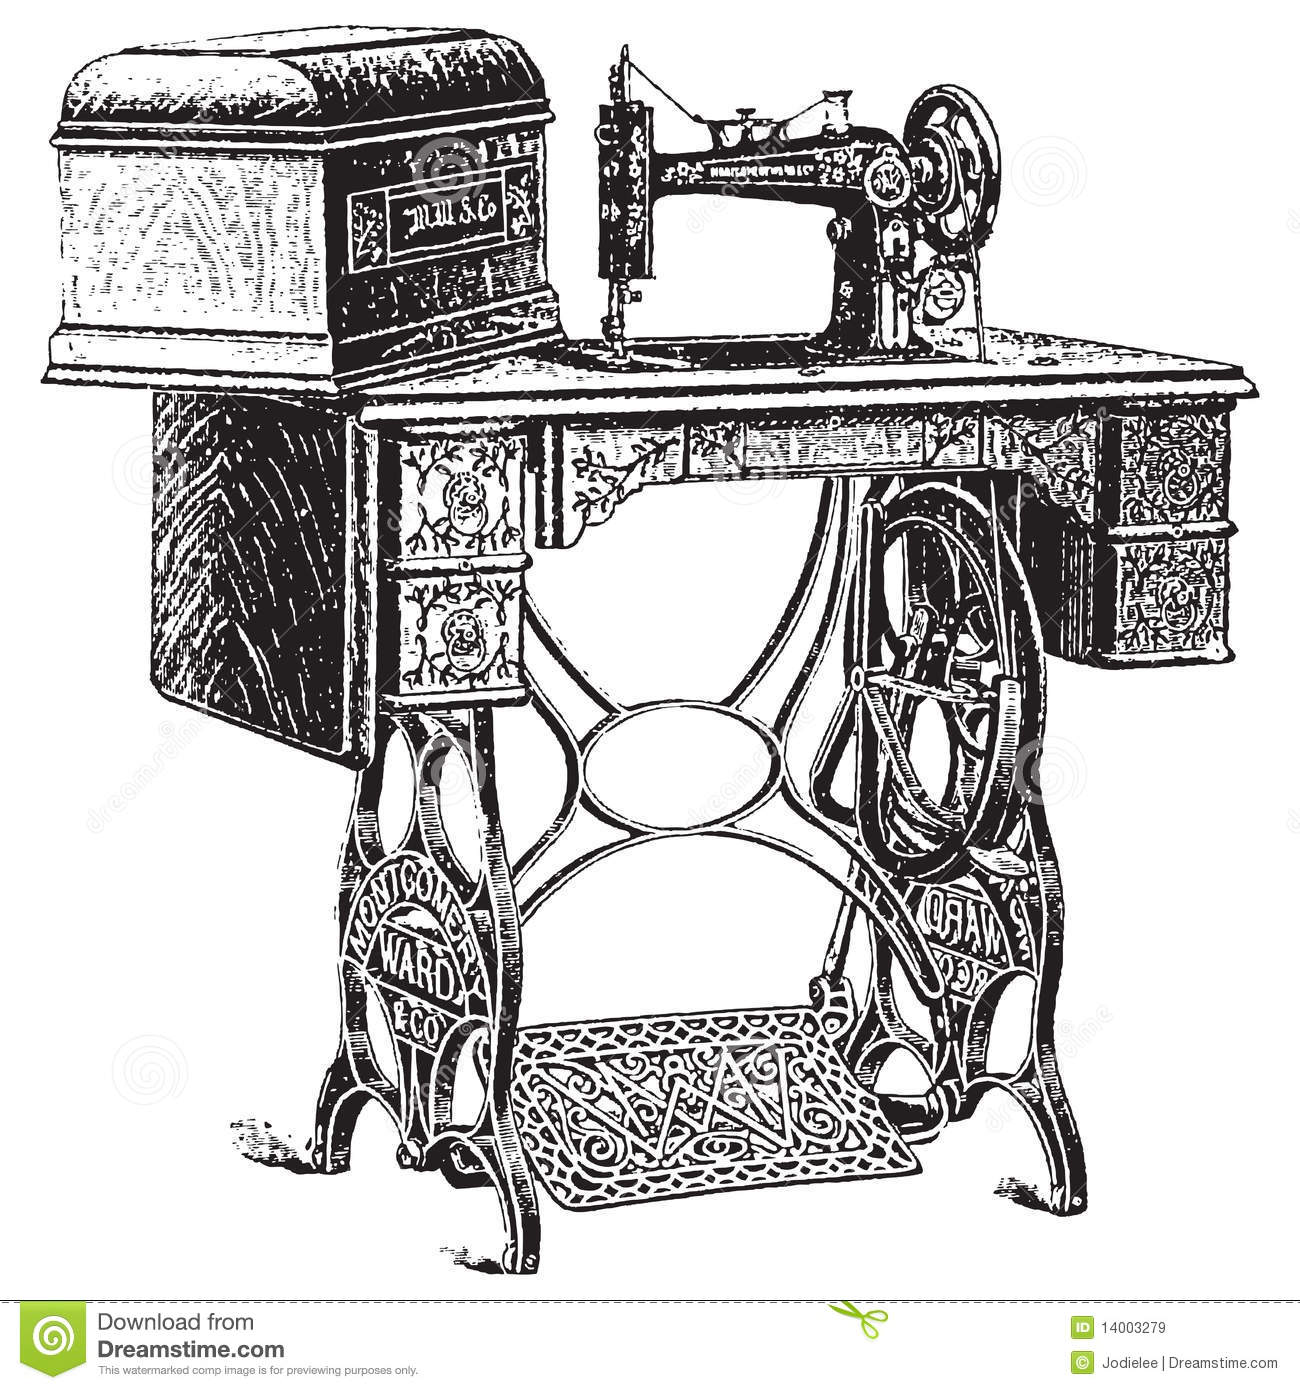 Illustration de vecteur de machine coudre antique images libres de droits image 14003279 - Machine a coudre dessin ...